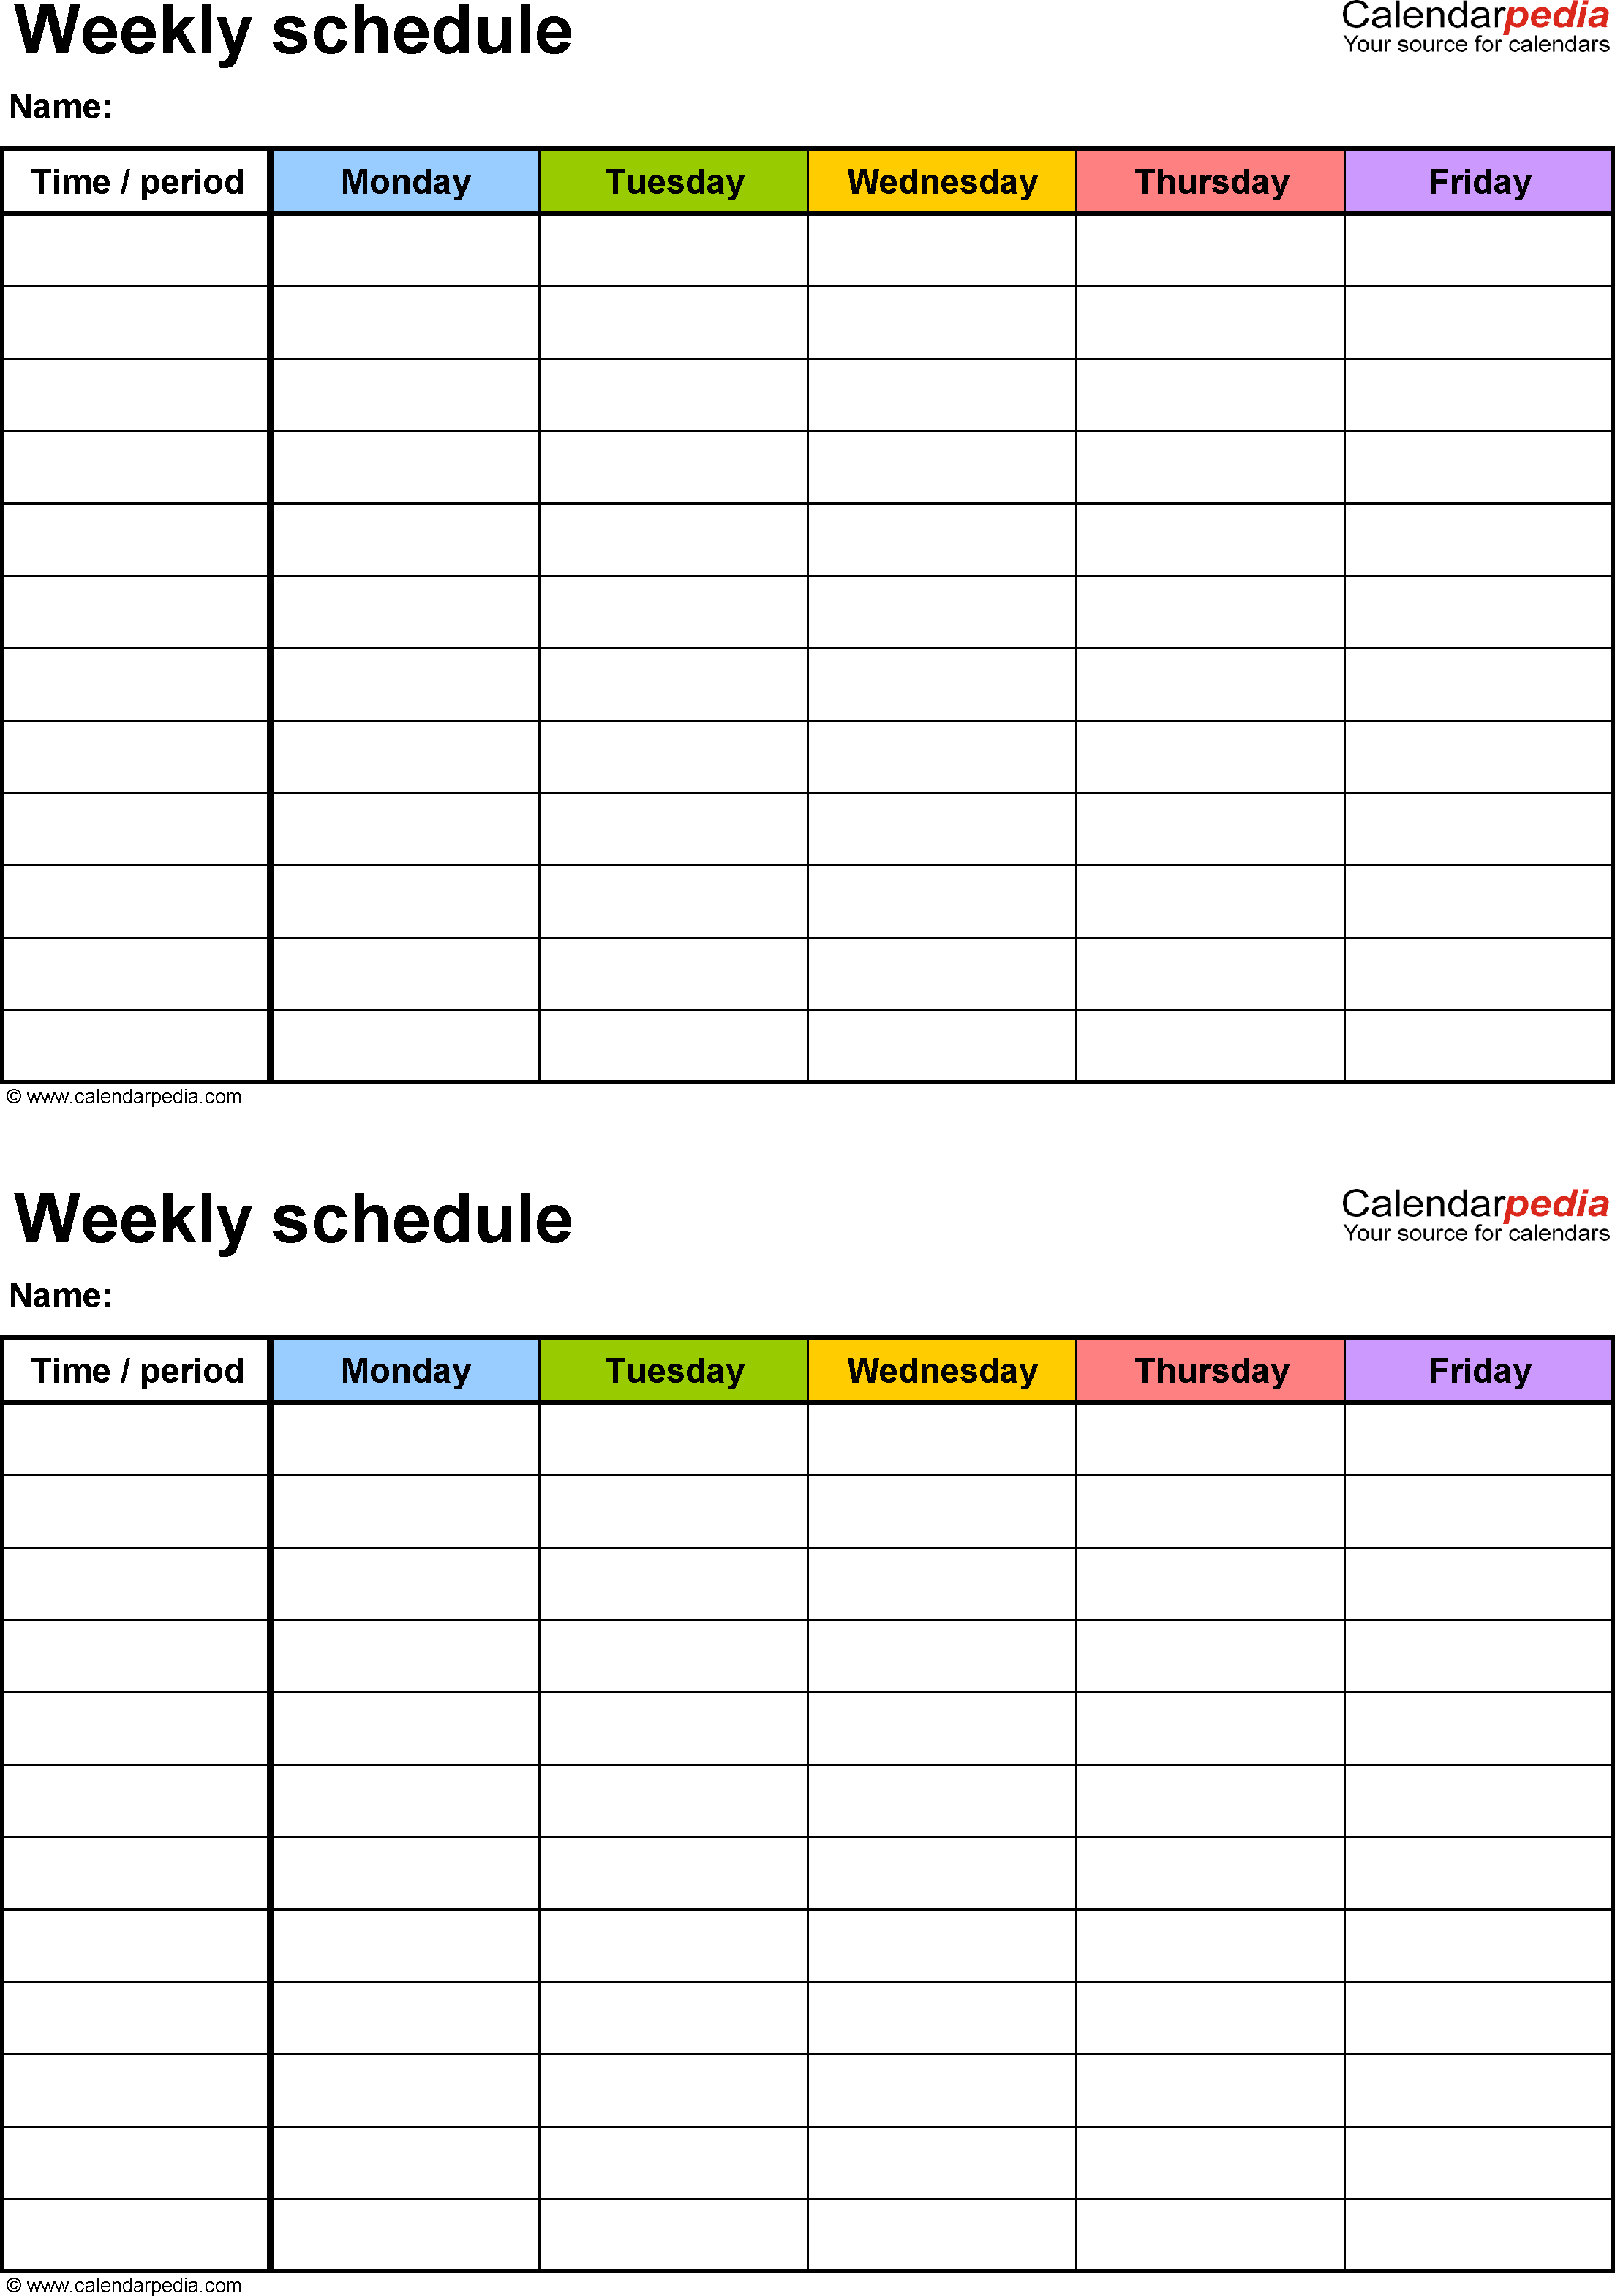 Free Weekly Schedule Templates For Word - 18 Templates intended for Cute Class Schedule Template 8 Class